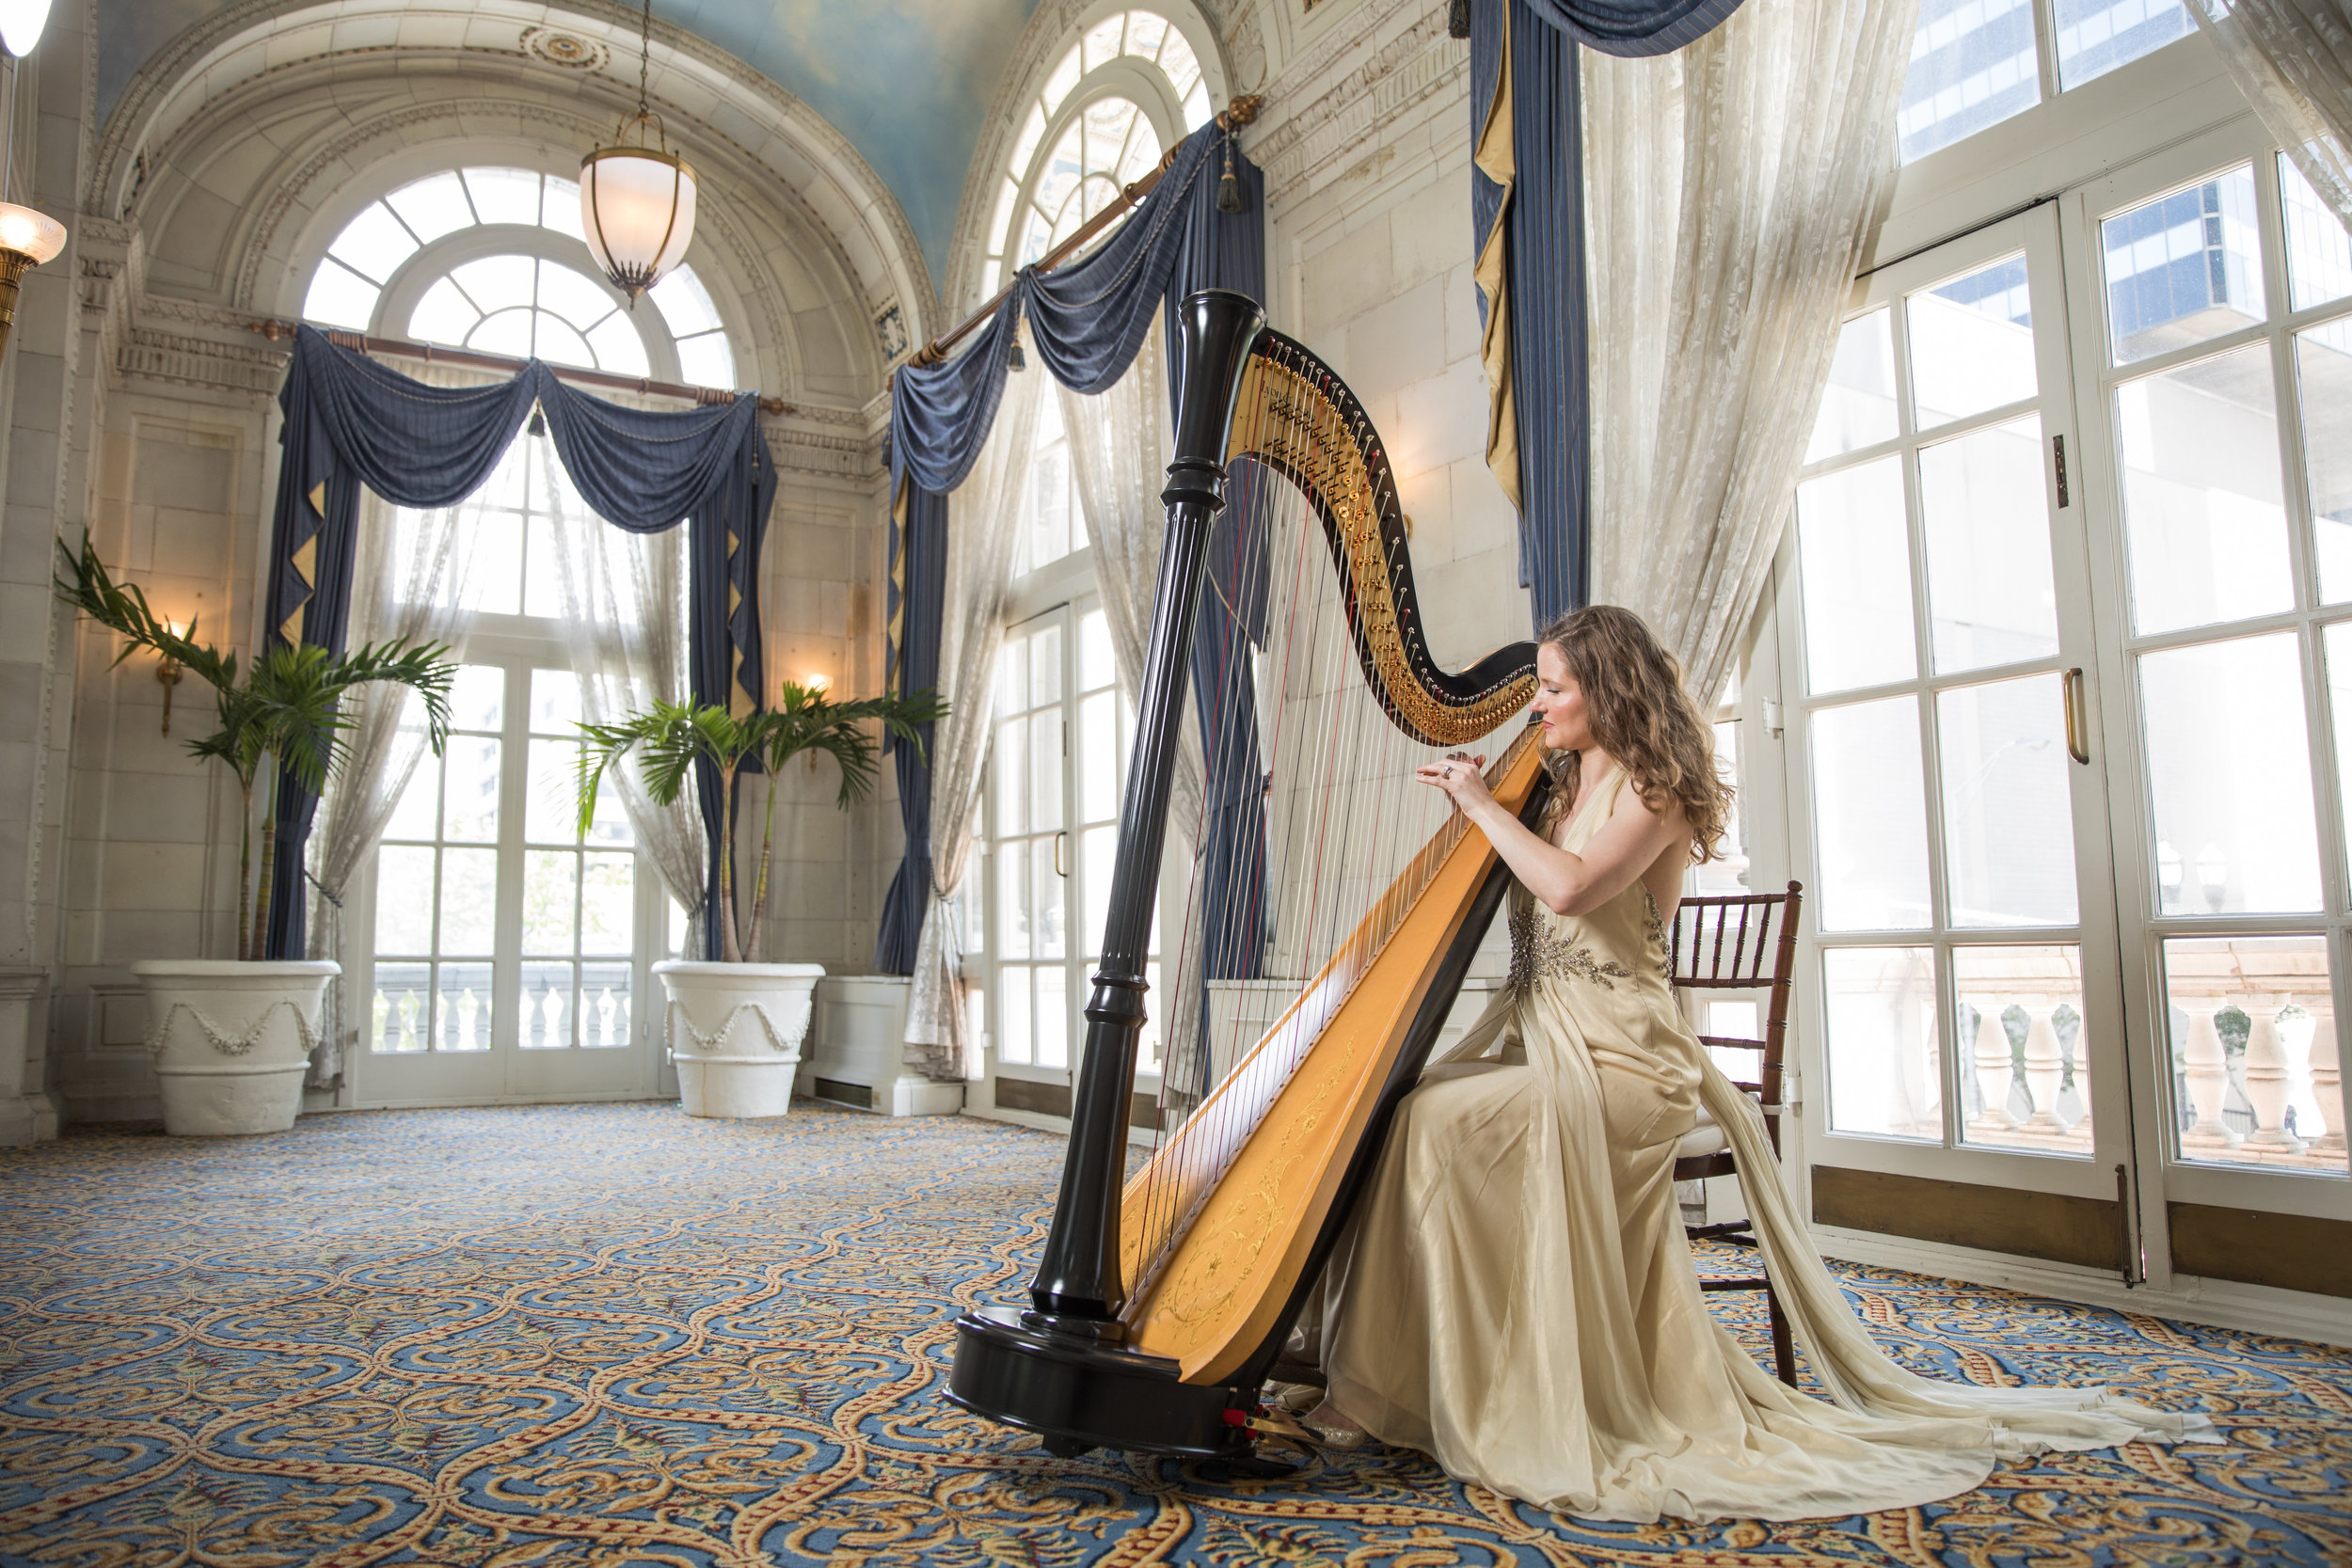 Imagine:Your grand entrance - As your guests are brought the attention by harp glissandos that announce your arrival as you float down the aisle, all eyes on you.